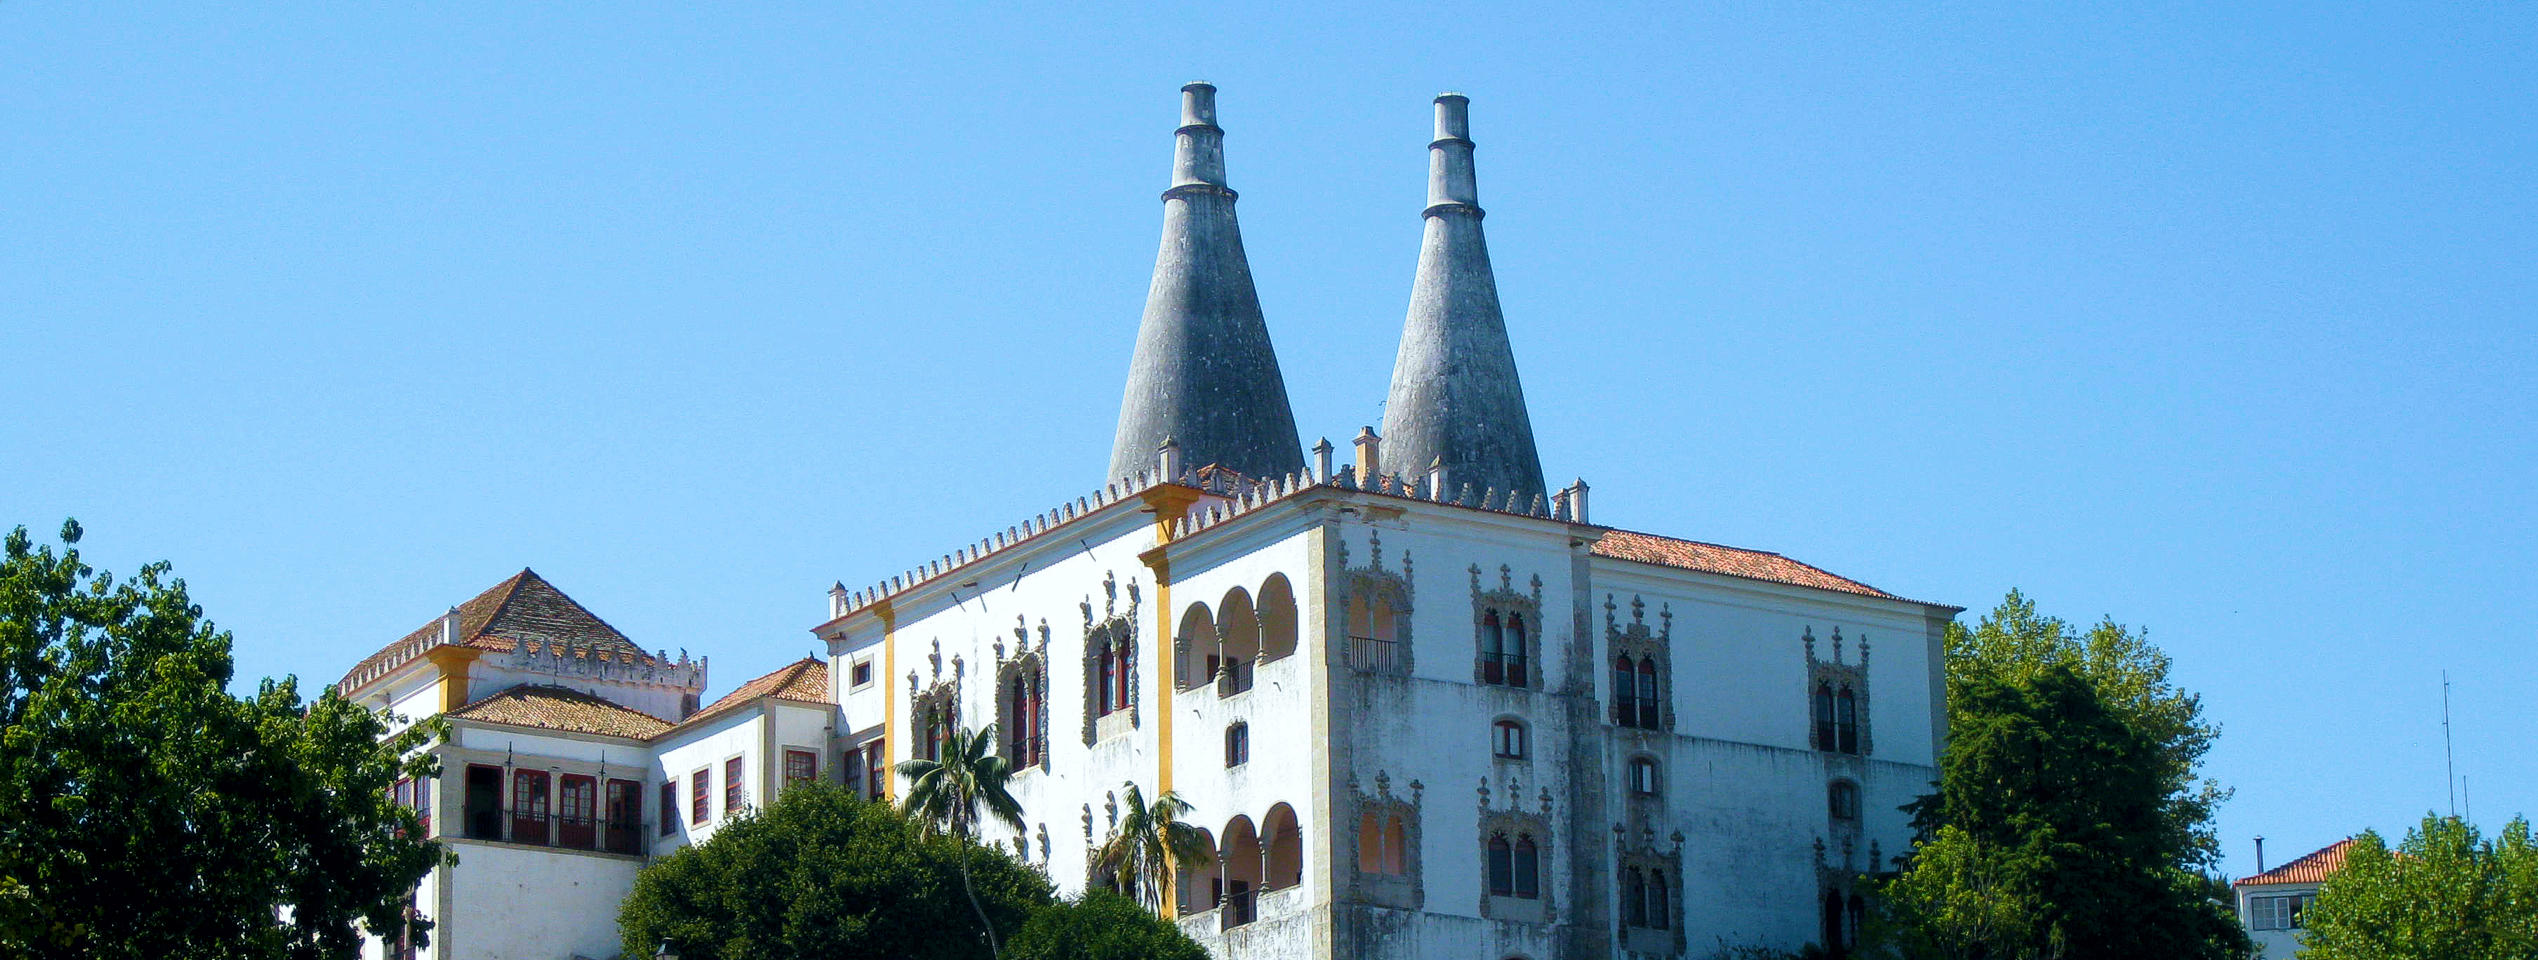 Sintra National Palace featuring its twin chimneys